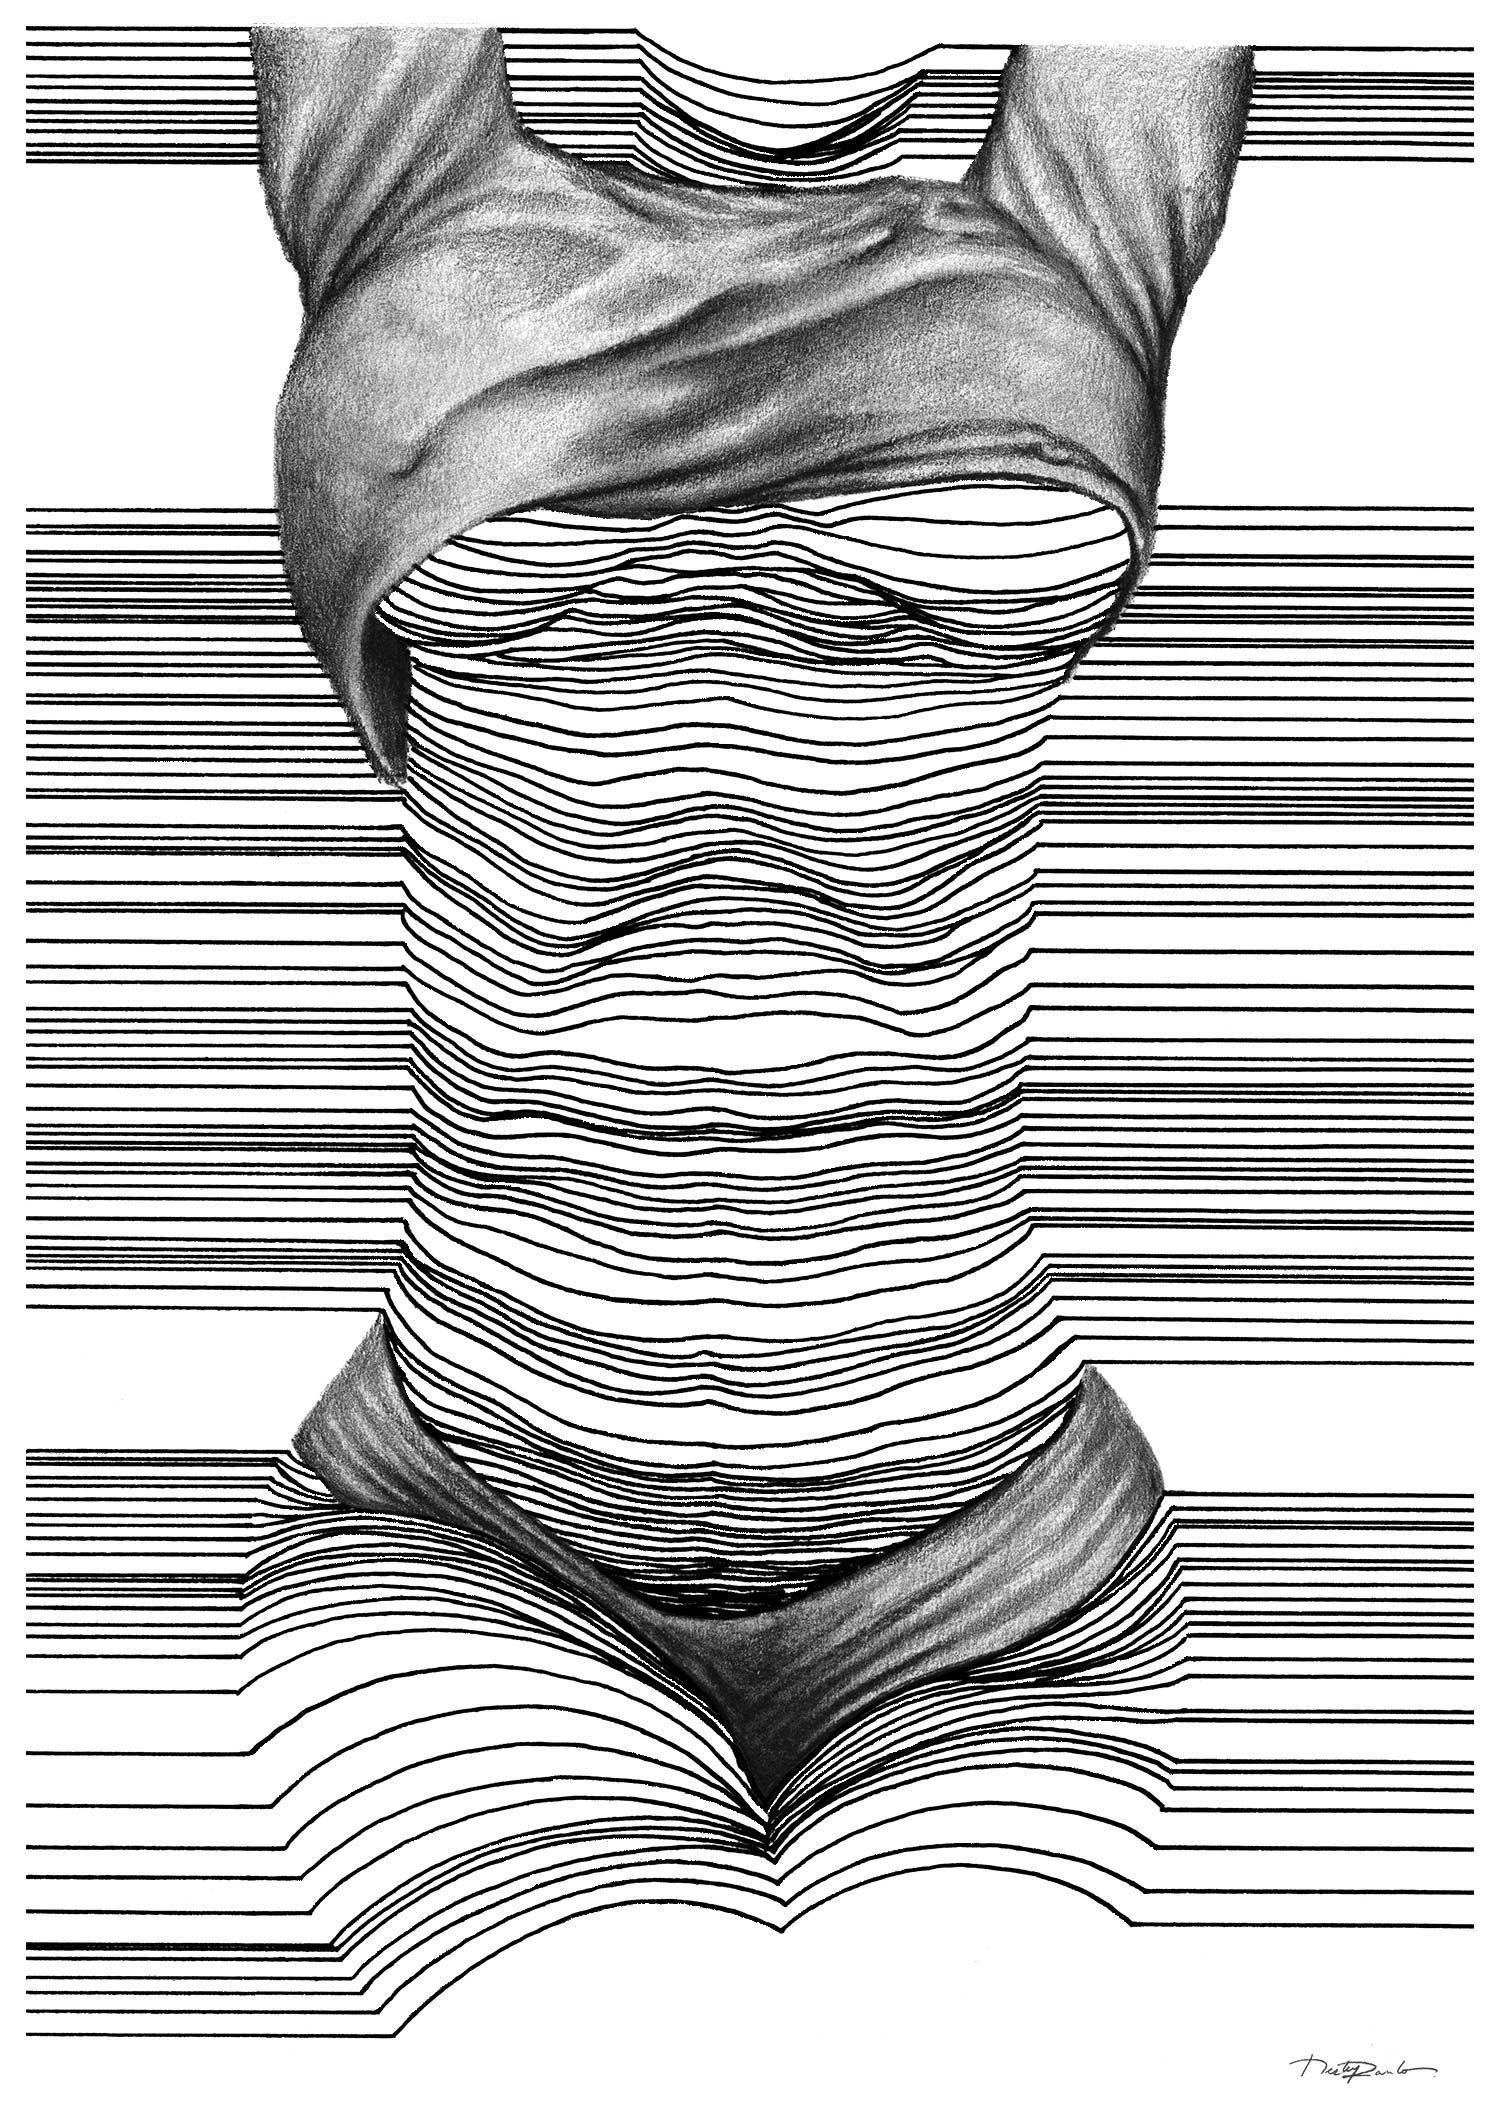 Line Drawings From D Models : Sensual d line art by nester formentera drawings